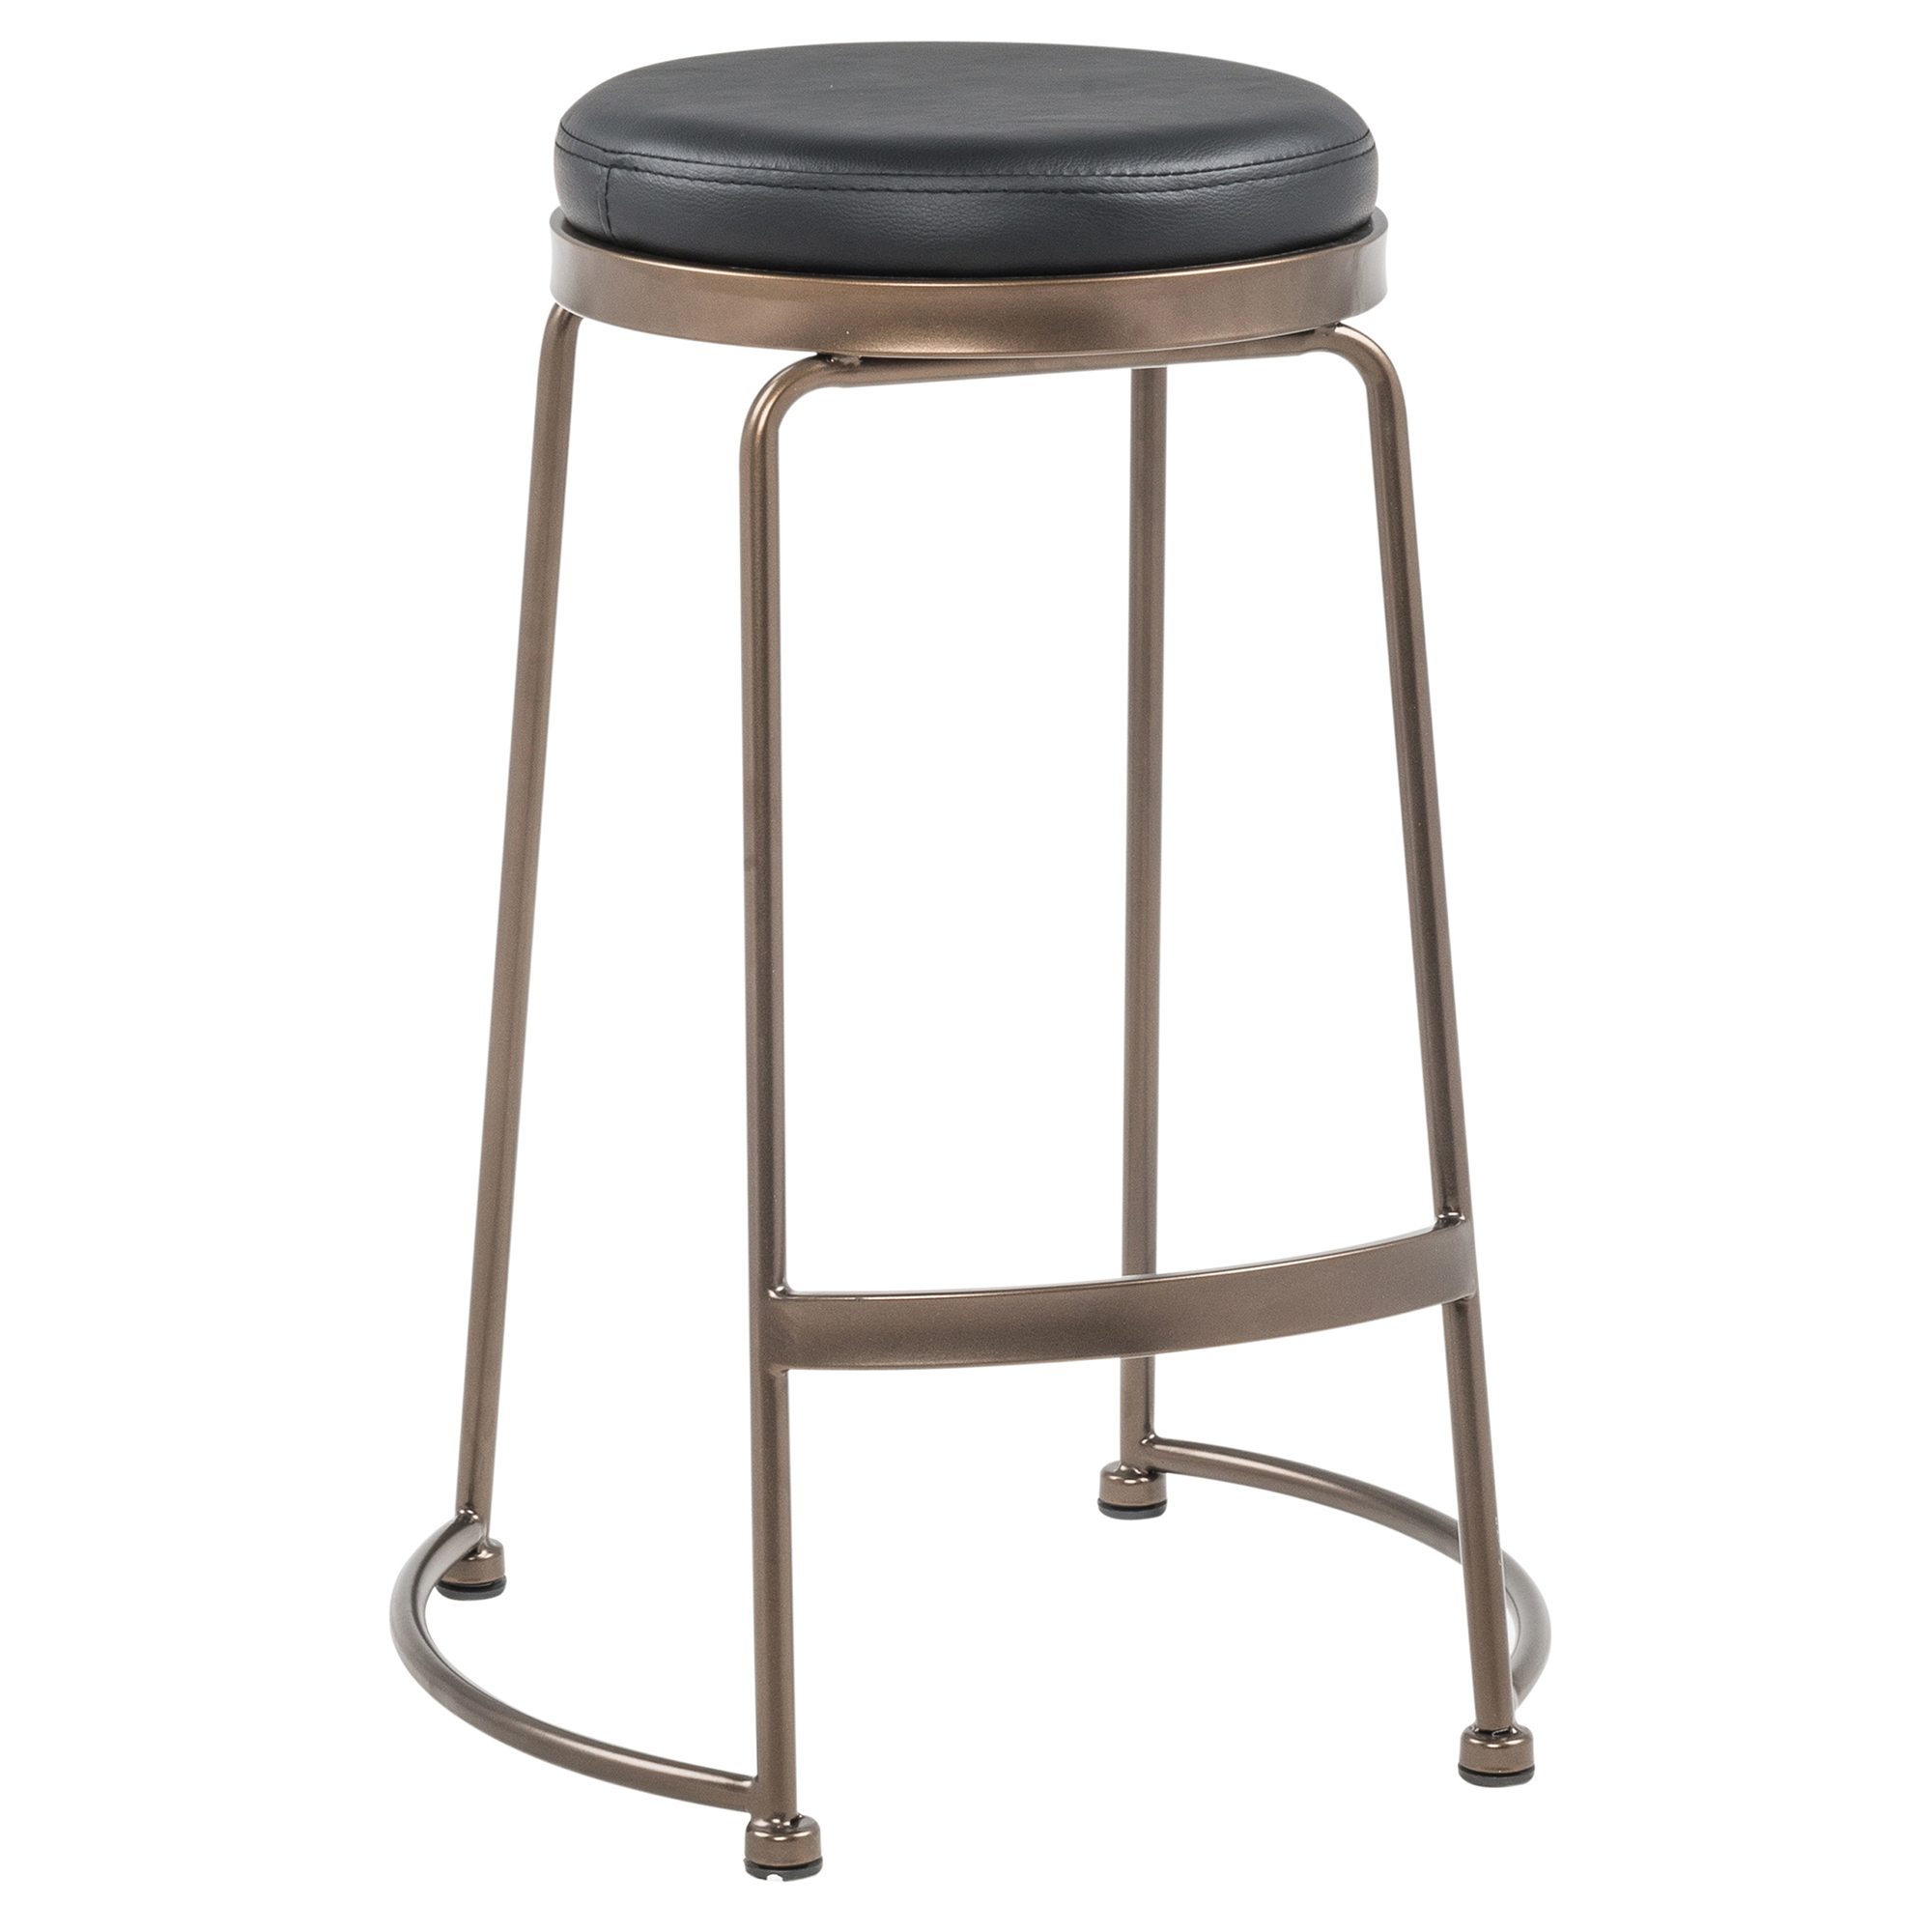 Set of 4 Rustic Industrial Metal & Faux Leather 26'' Counter Stool in Copper & Black